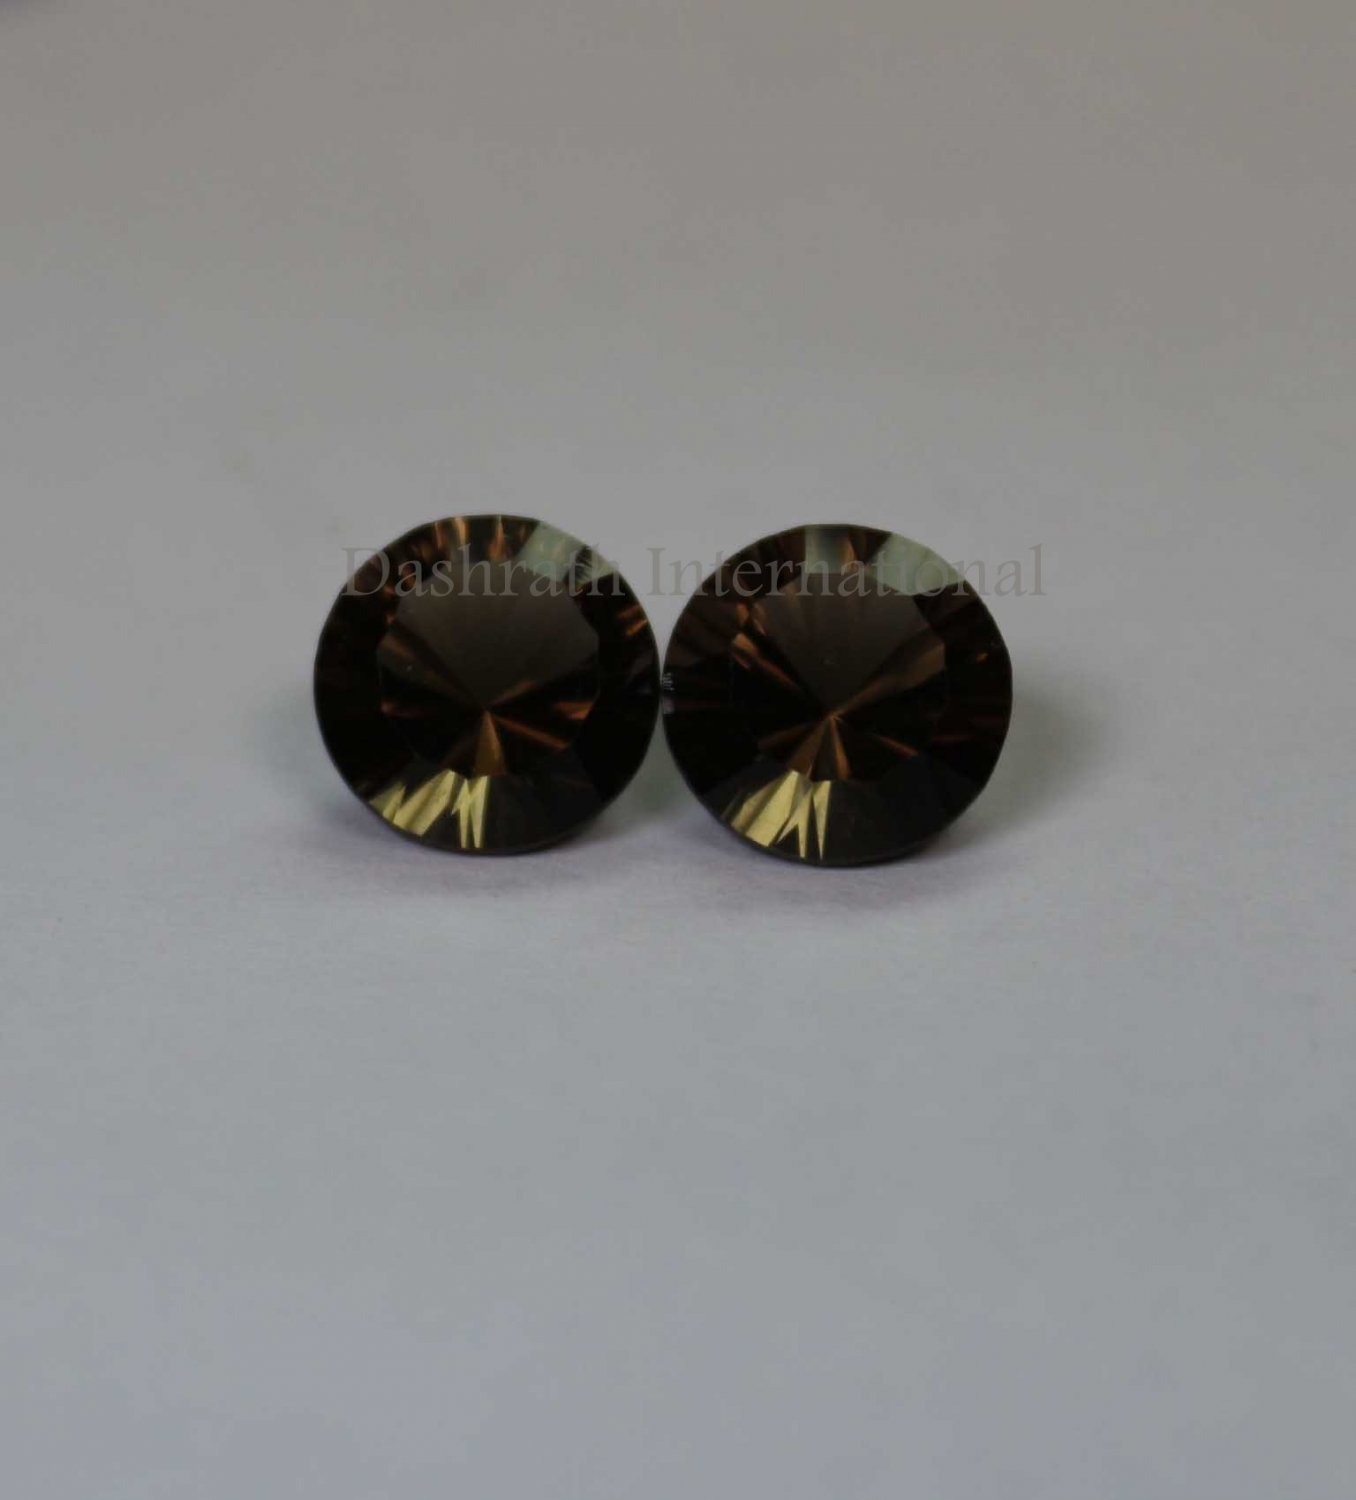 11mmNatural Smoky Quartz Concave Cut Round 2 Piece (1 Pair )   (SI) Top Quality  Loose Gemstone